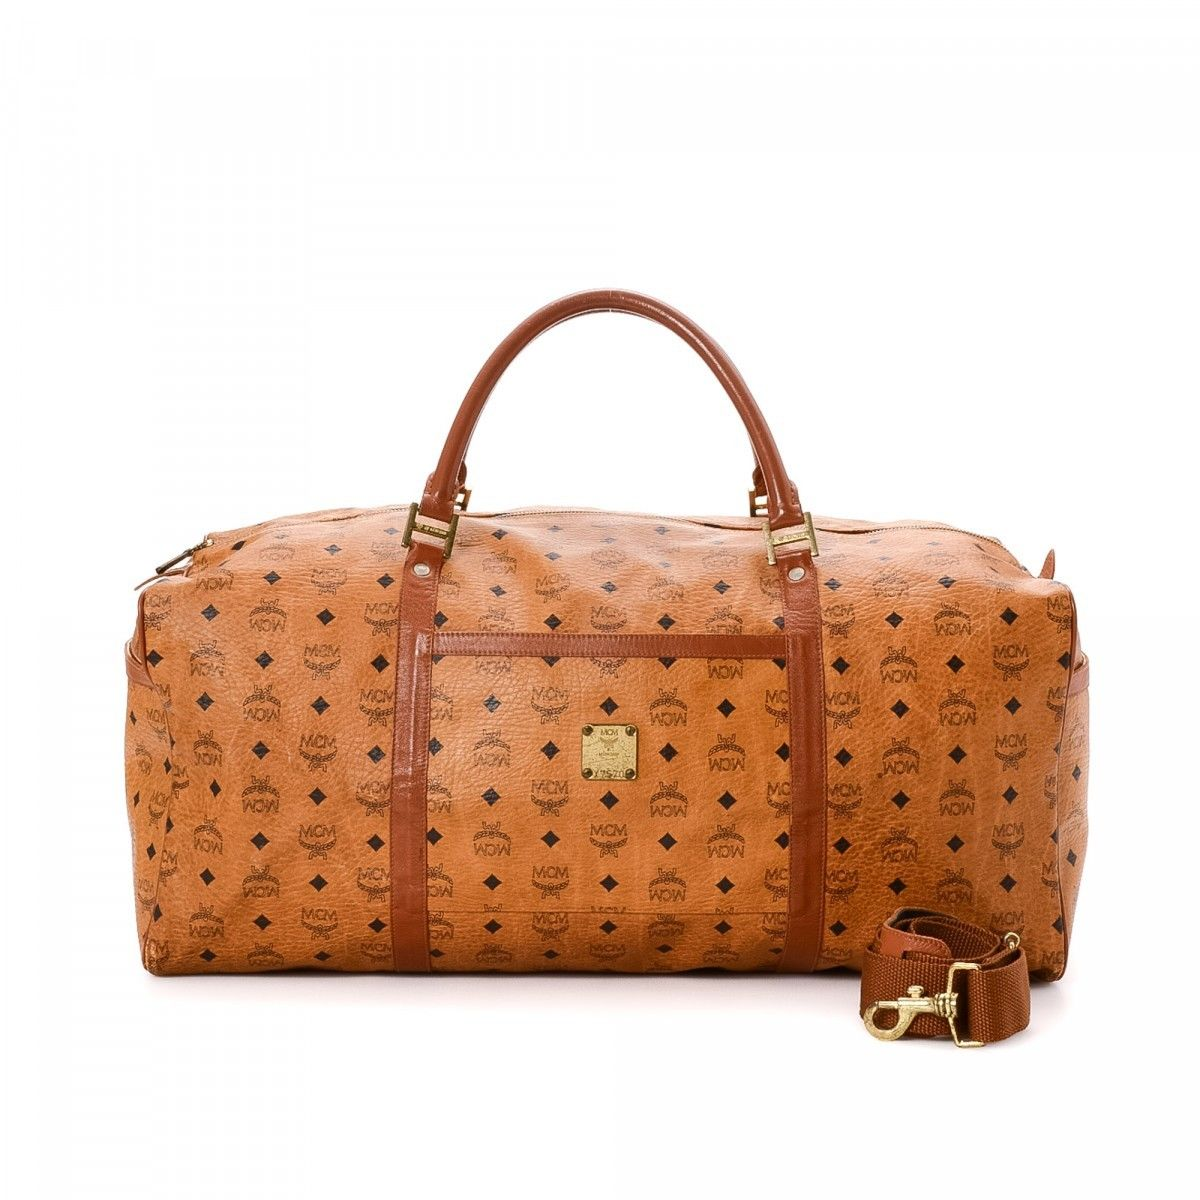 MCM Pre-owned - Leather travel bag Jevlp